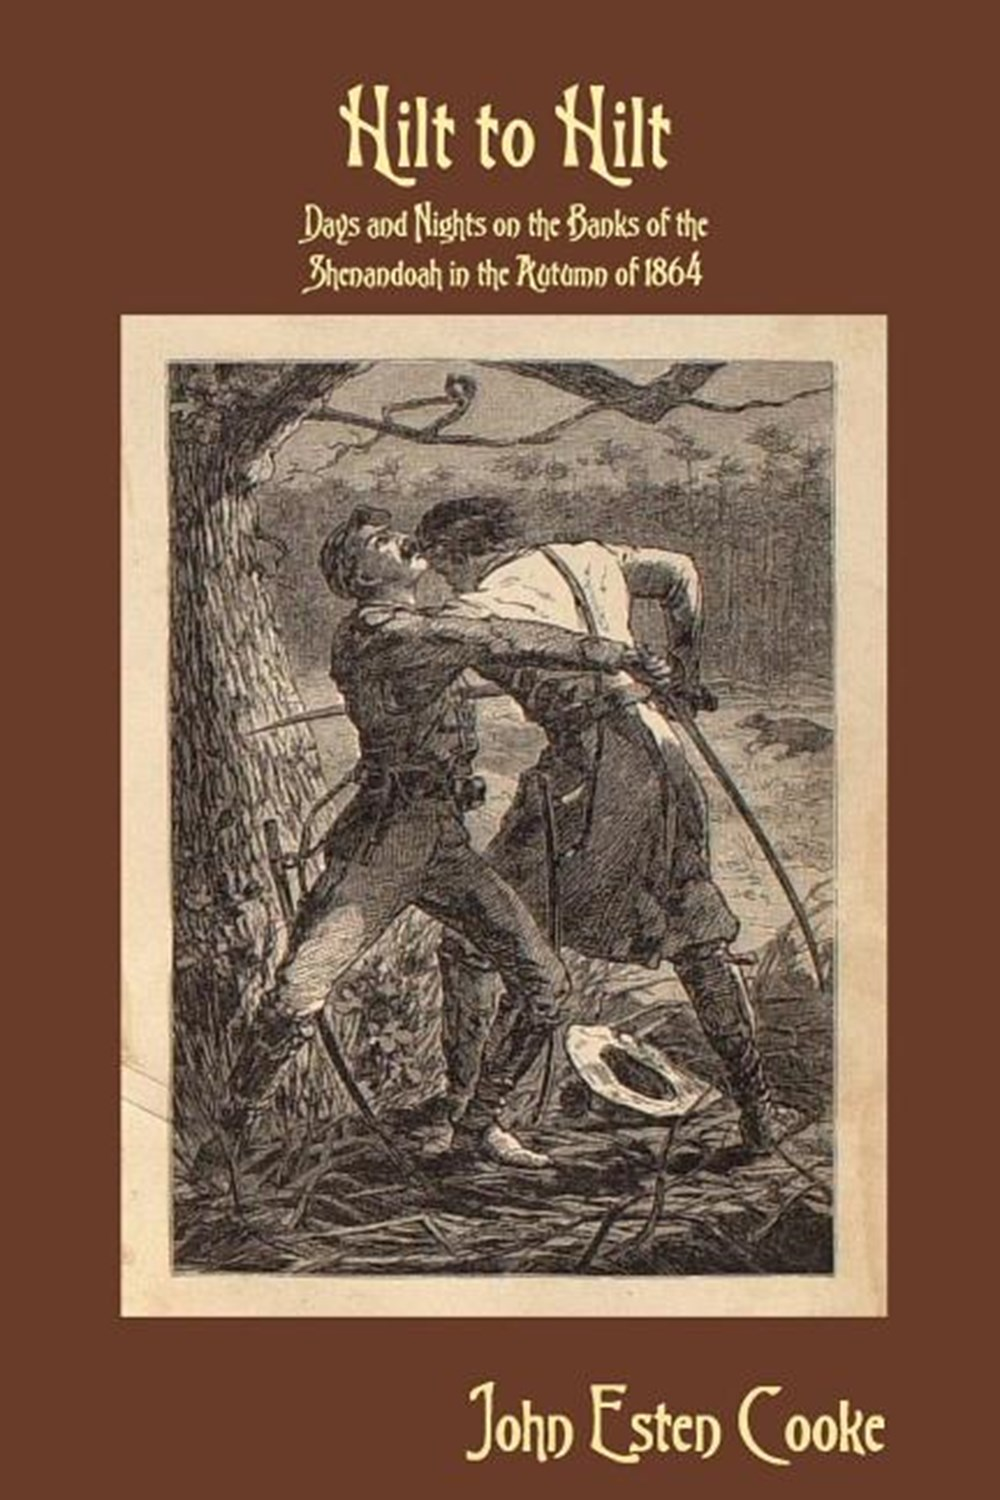 Hilt to Hilt Days and Nights on the Banks of the Shenandoah in the Autumn of 1864